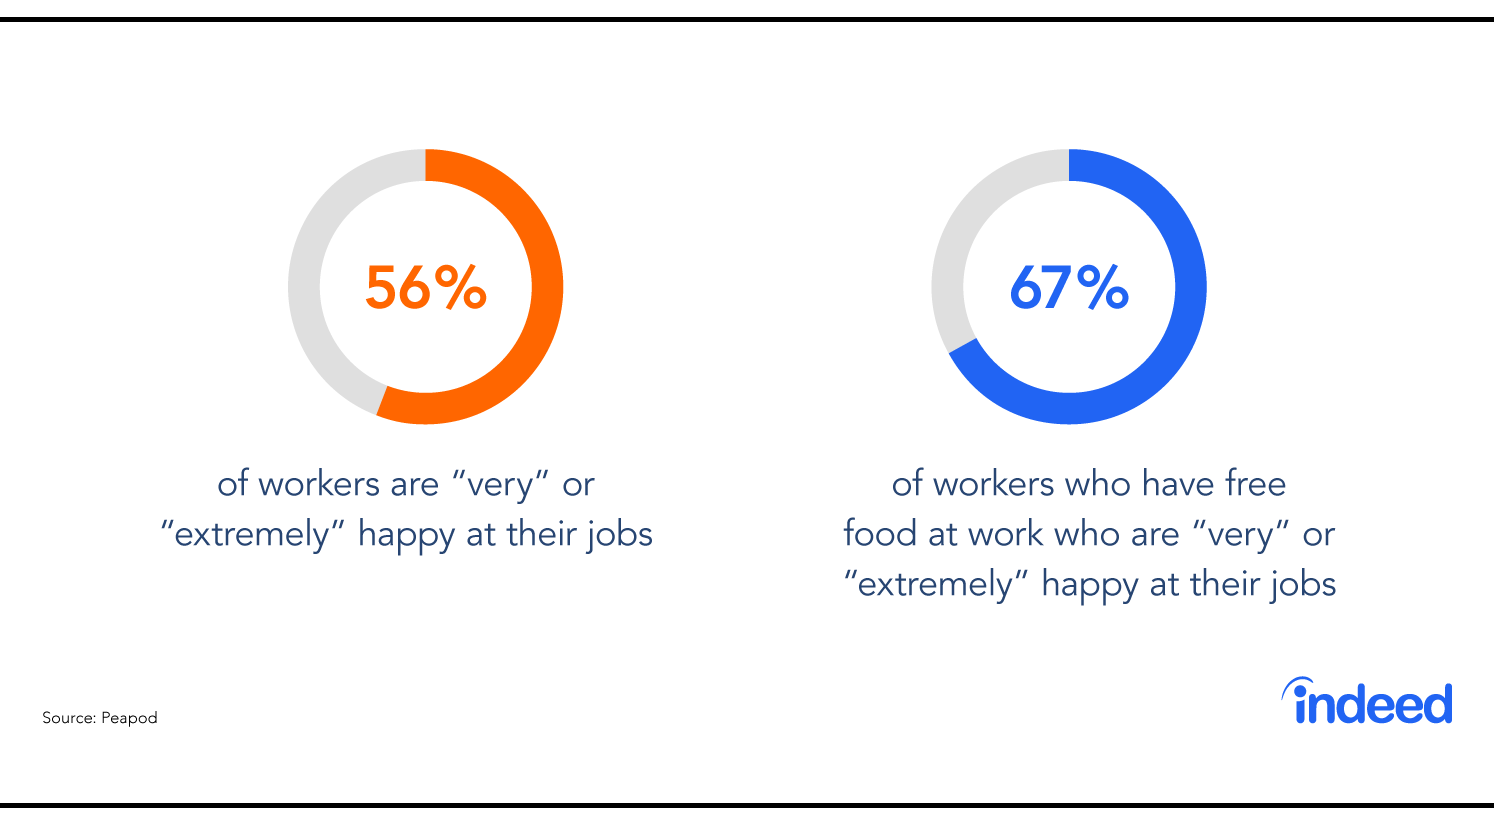 Employees who have free food at work are happier.